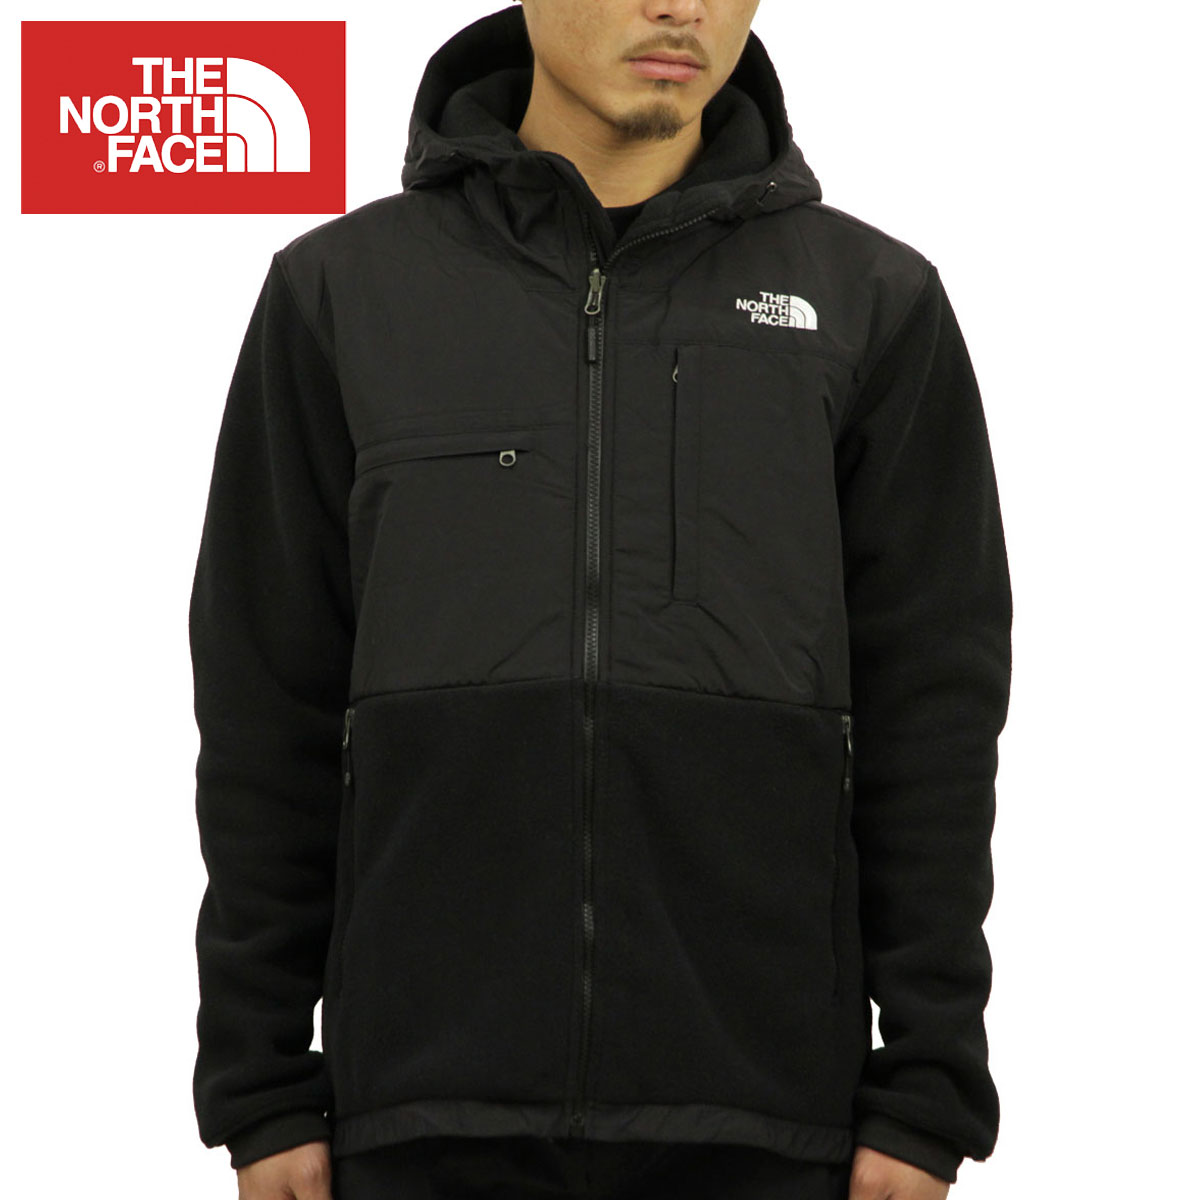 06a39b2e3c709 North Face THE NORTH FACE regular article men fleece jacket DENALI 2 FLEECE  HOODIE JACKET RECYCLED TNF BLACK NF0A2TBN LE4